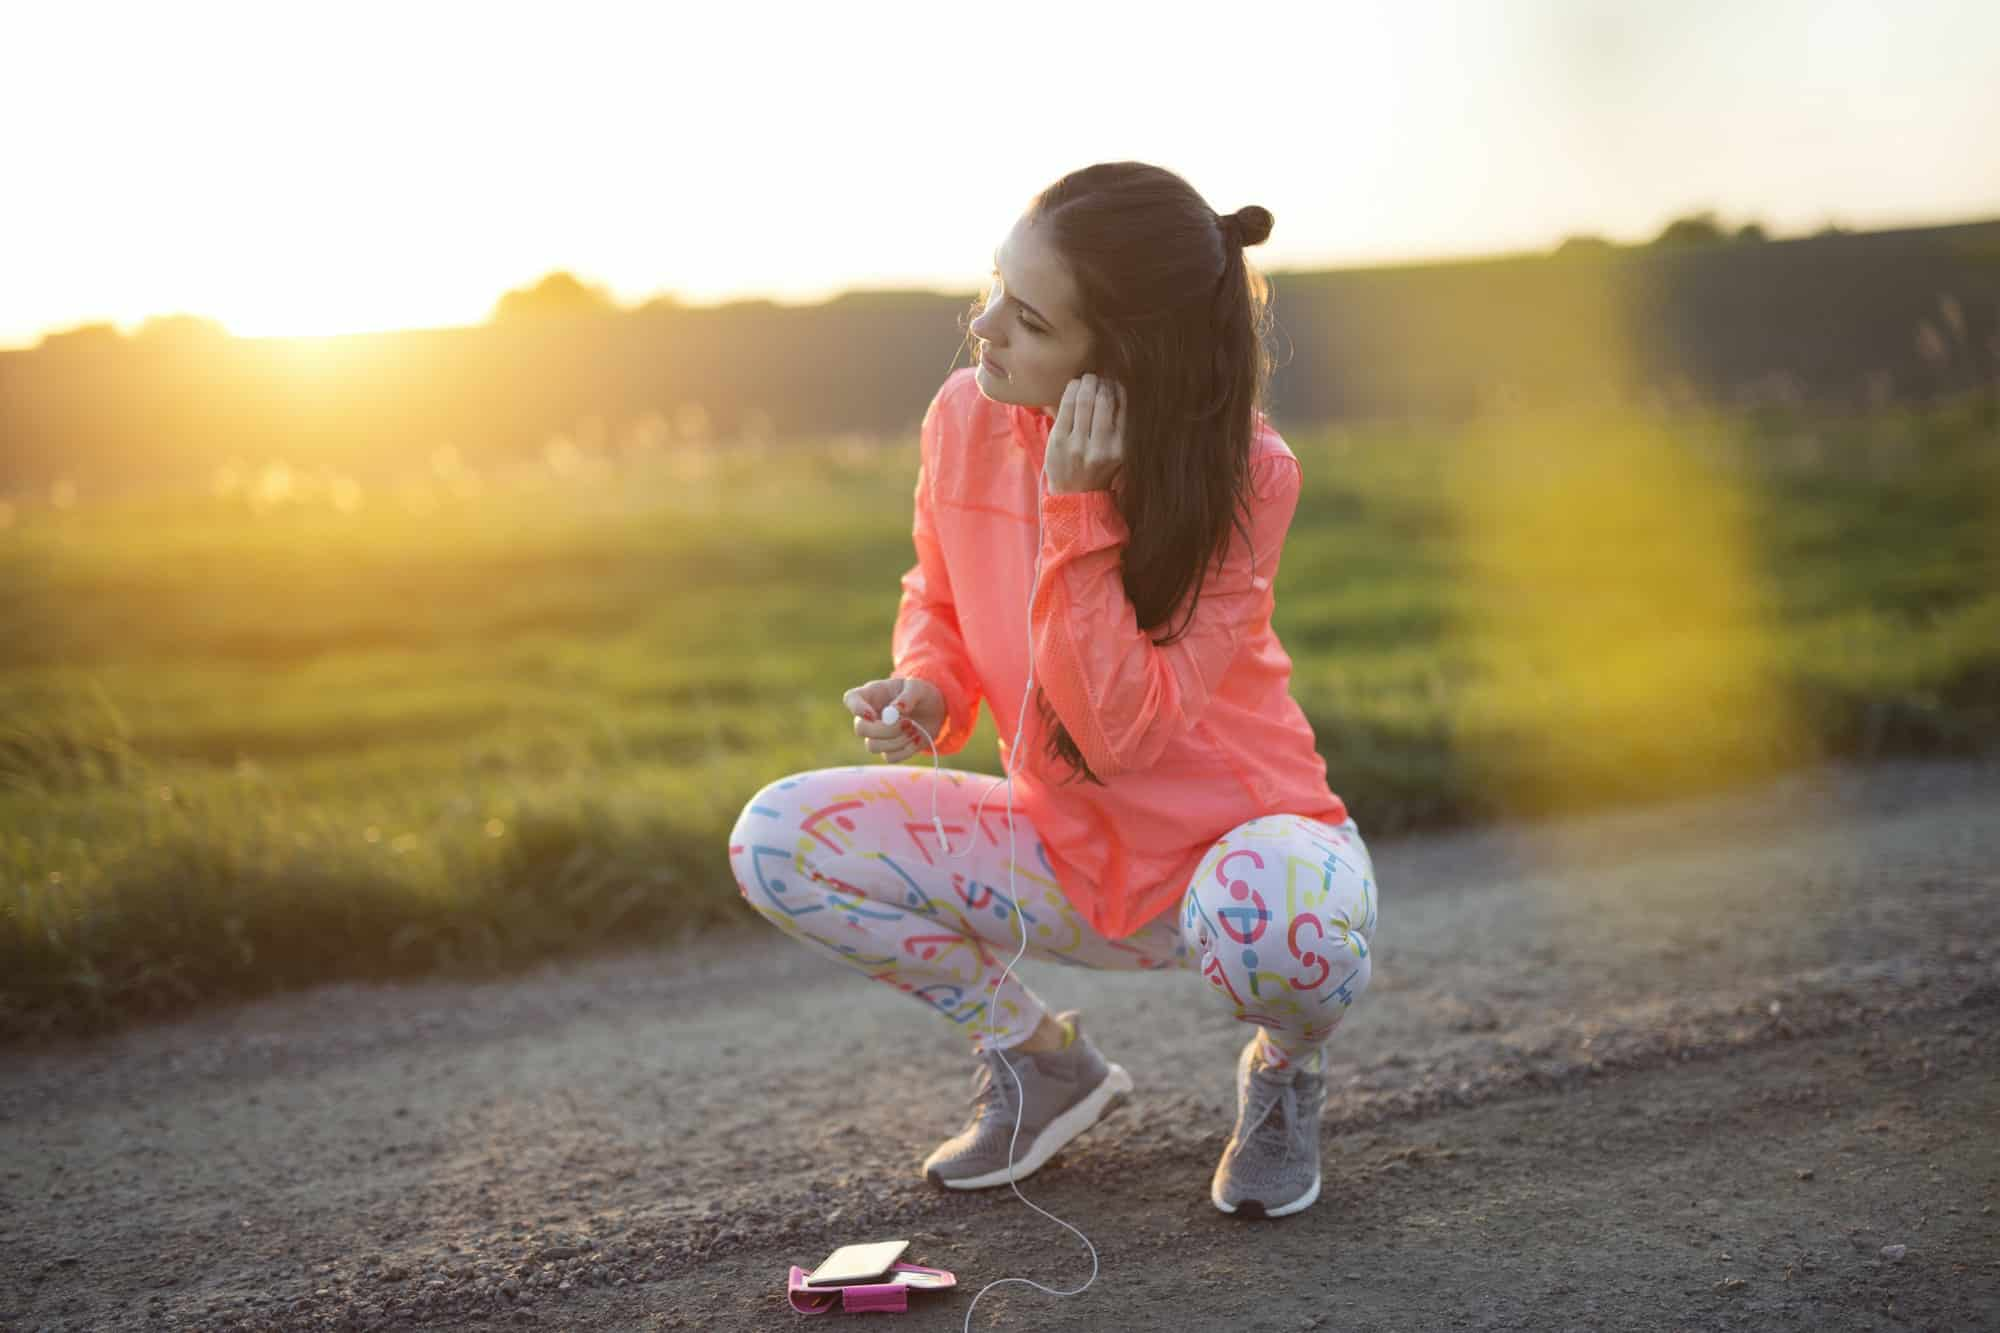 Woman crouching on dirt road and putting headphones in ear